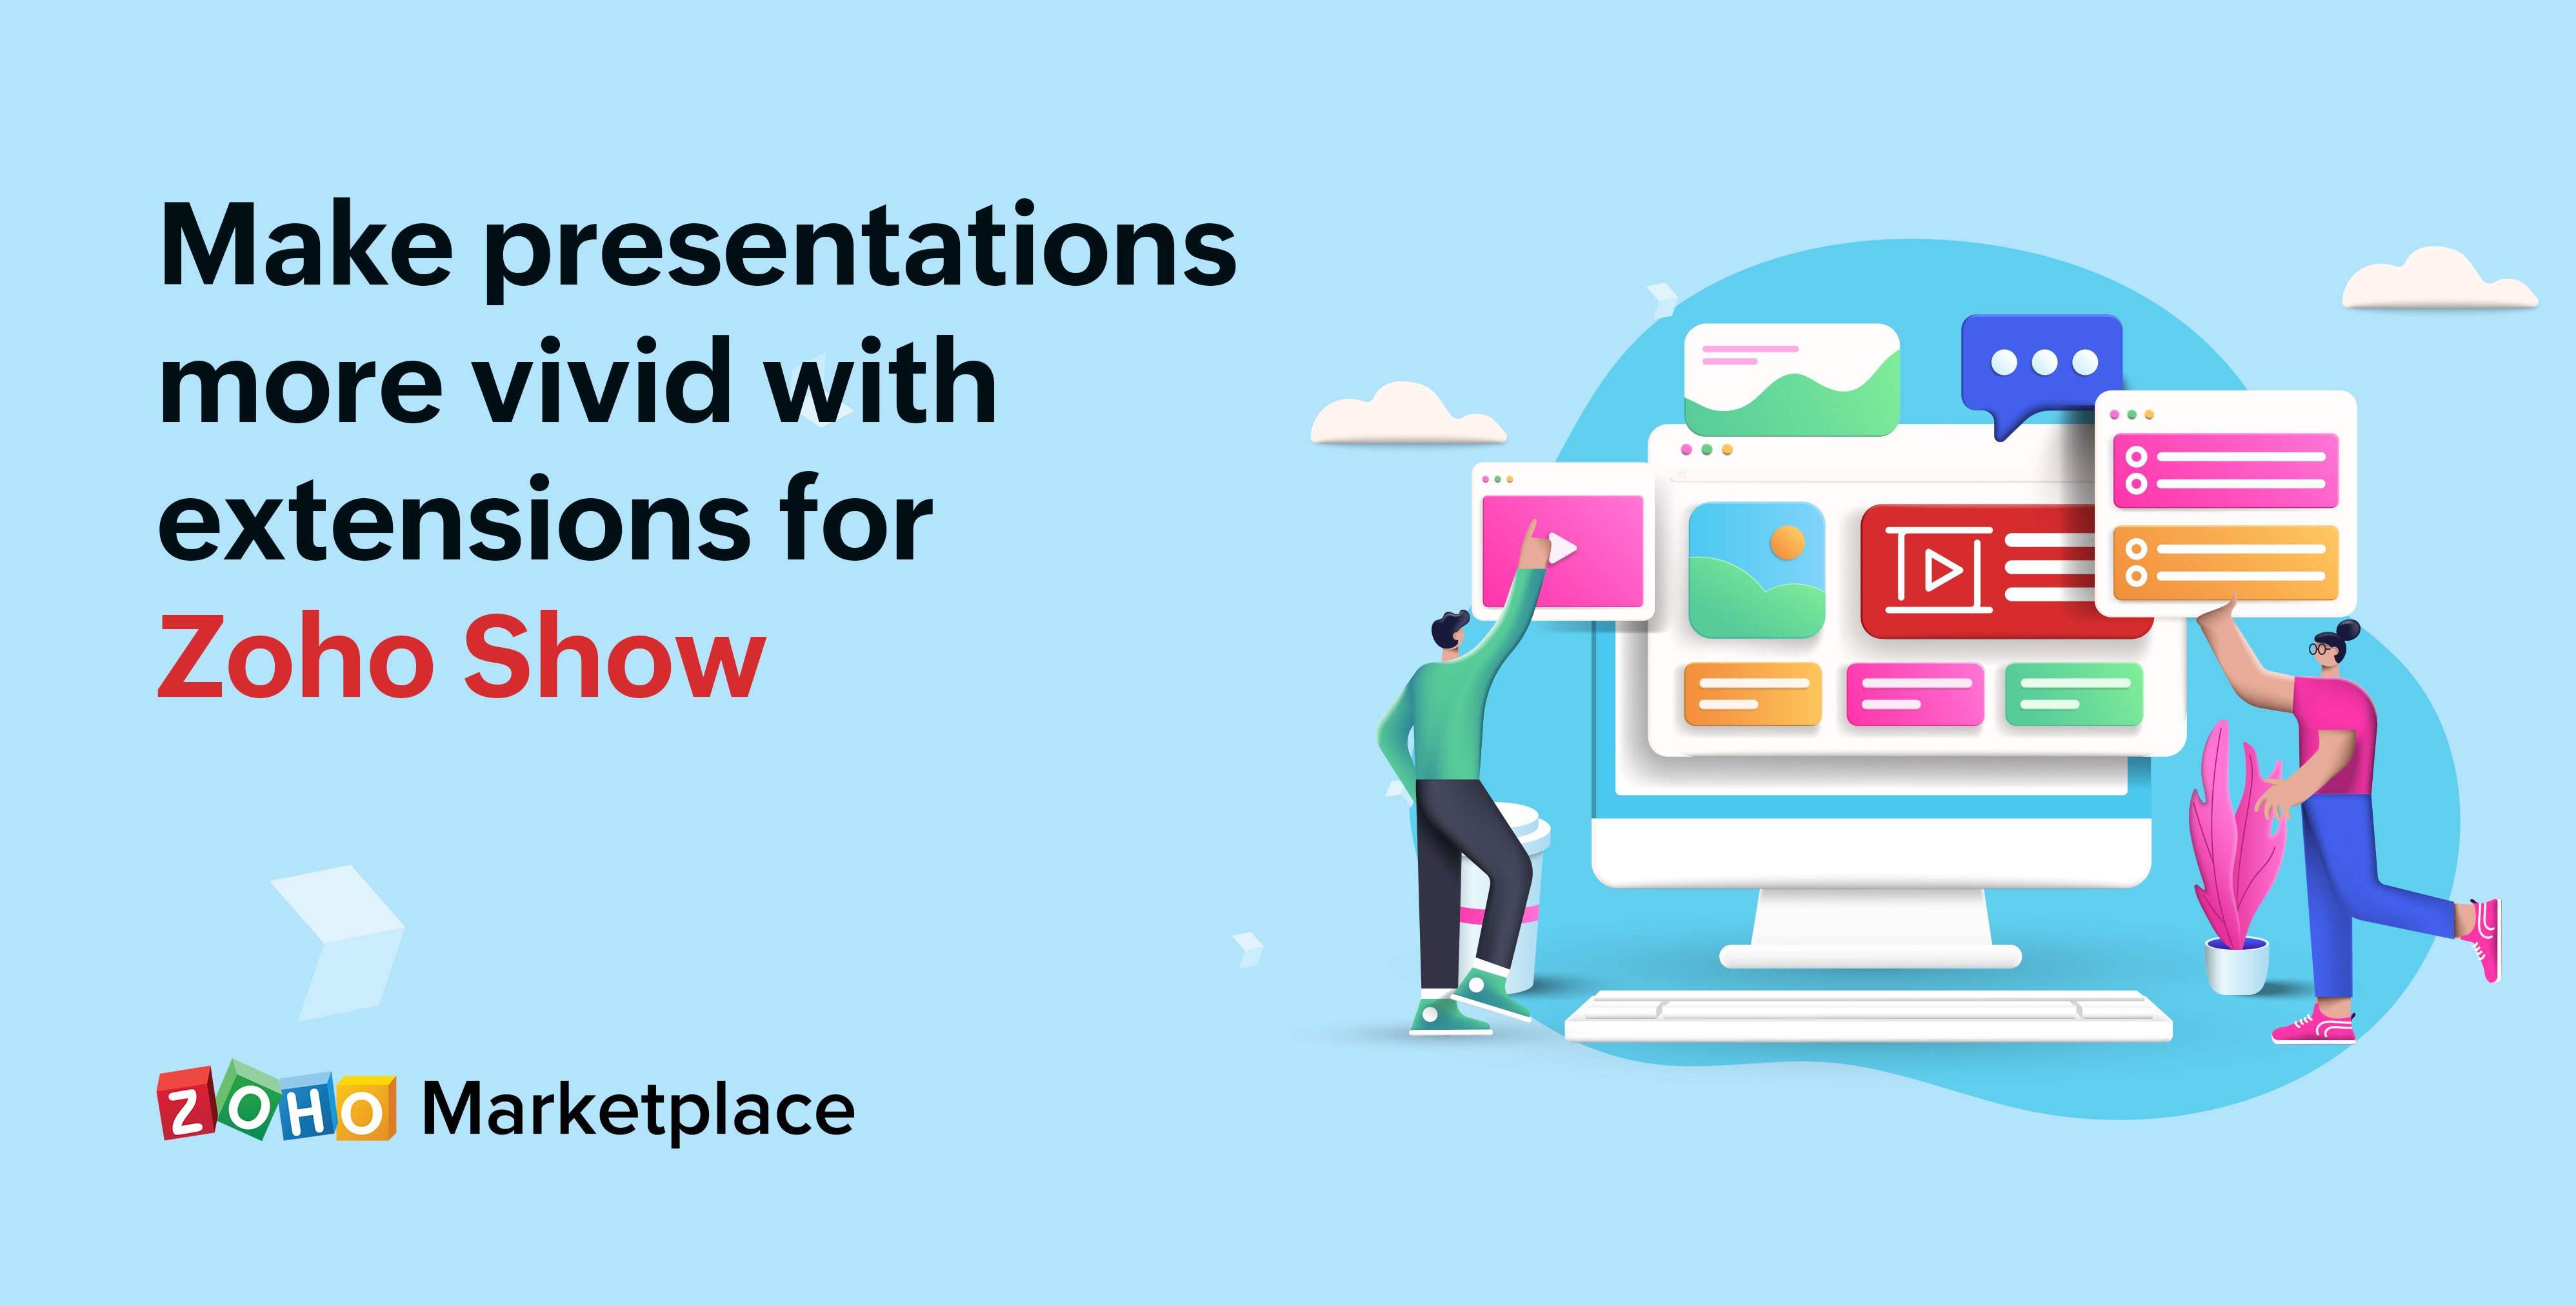 Make presentations more vivid with extensions for Zoho Show